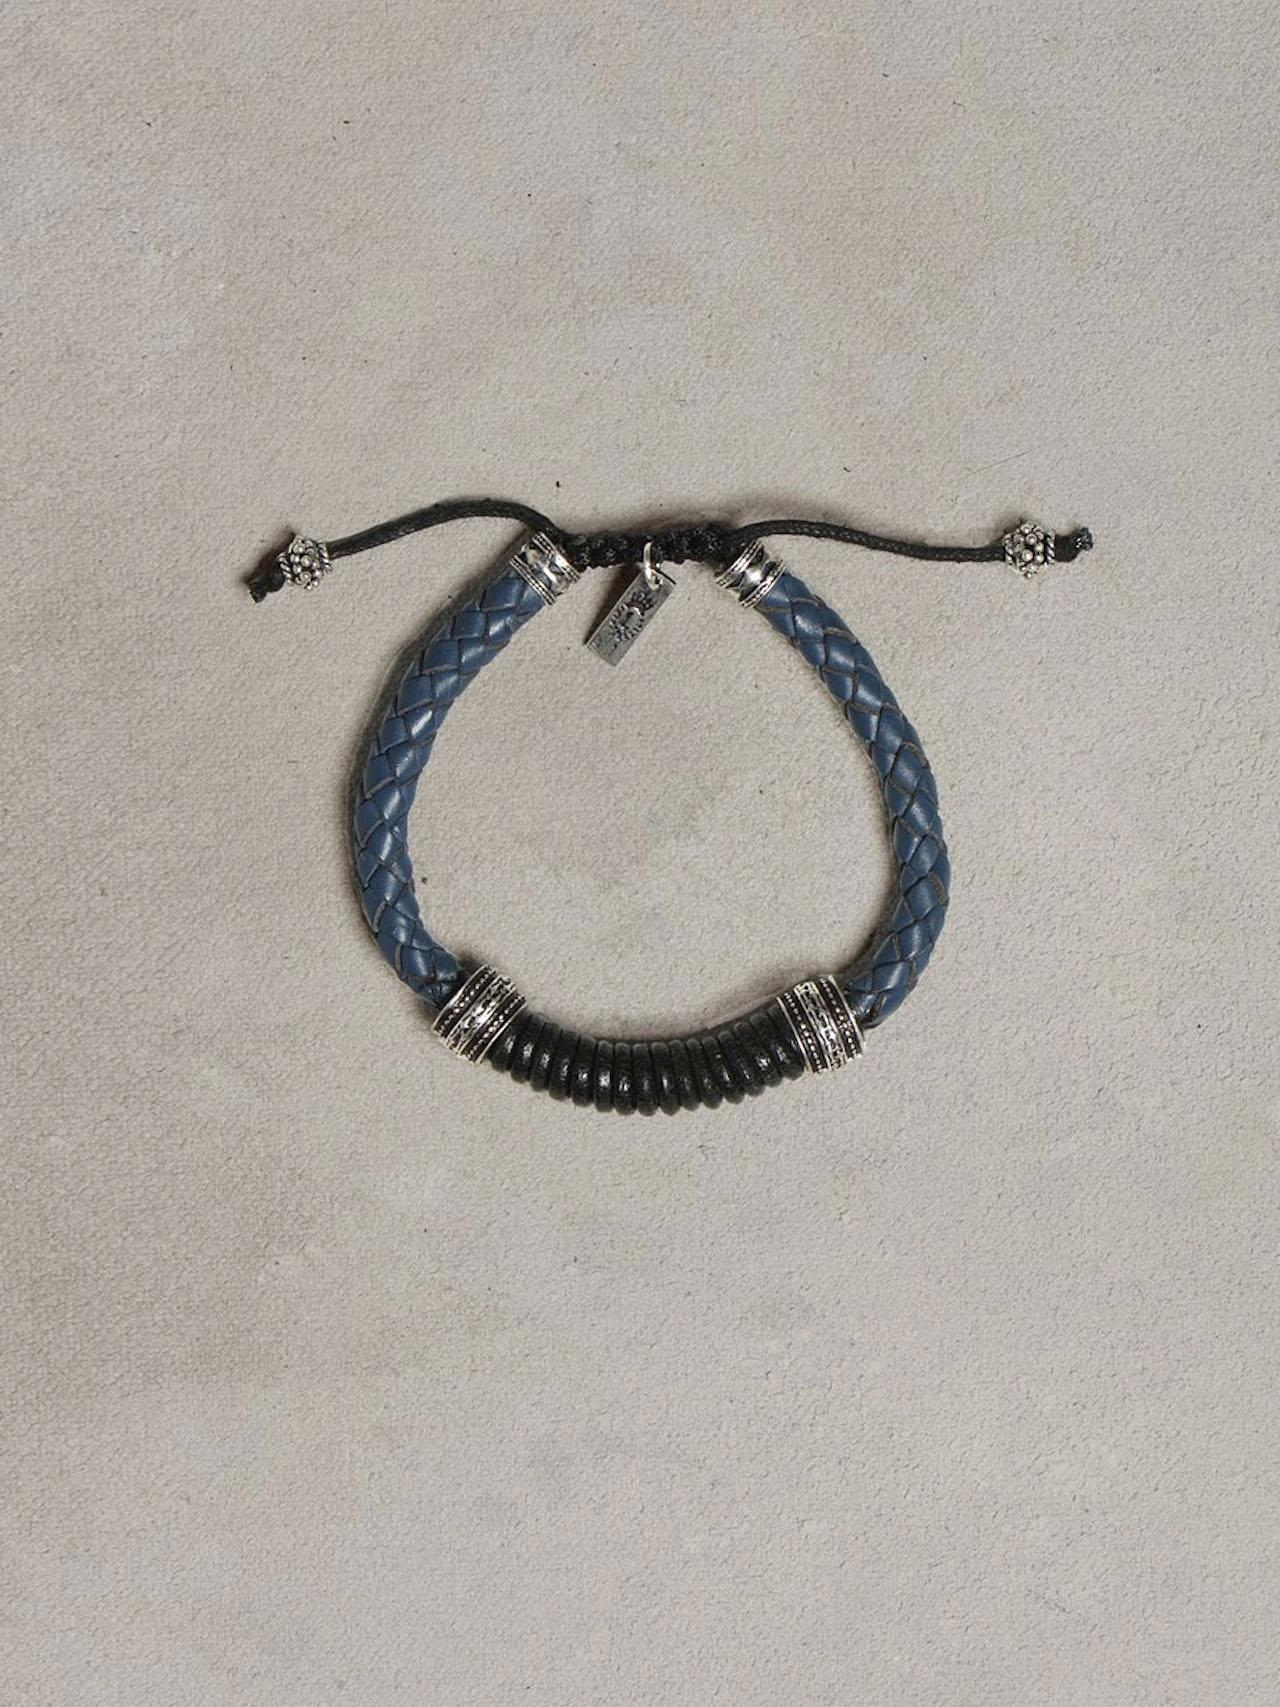 Braided Blue & Black Leather Bracelet